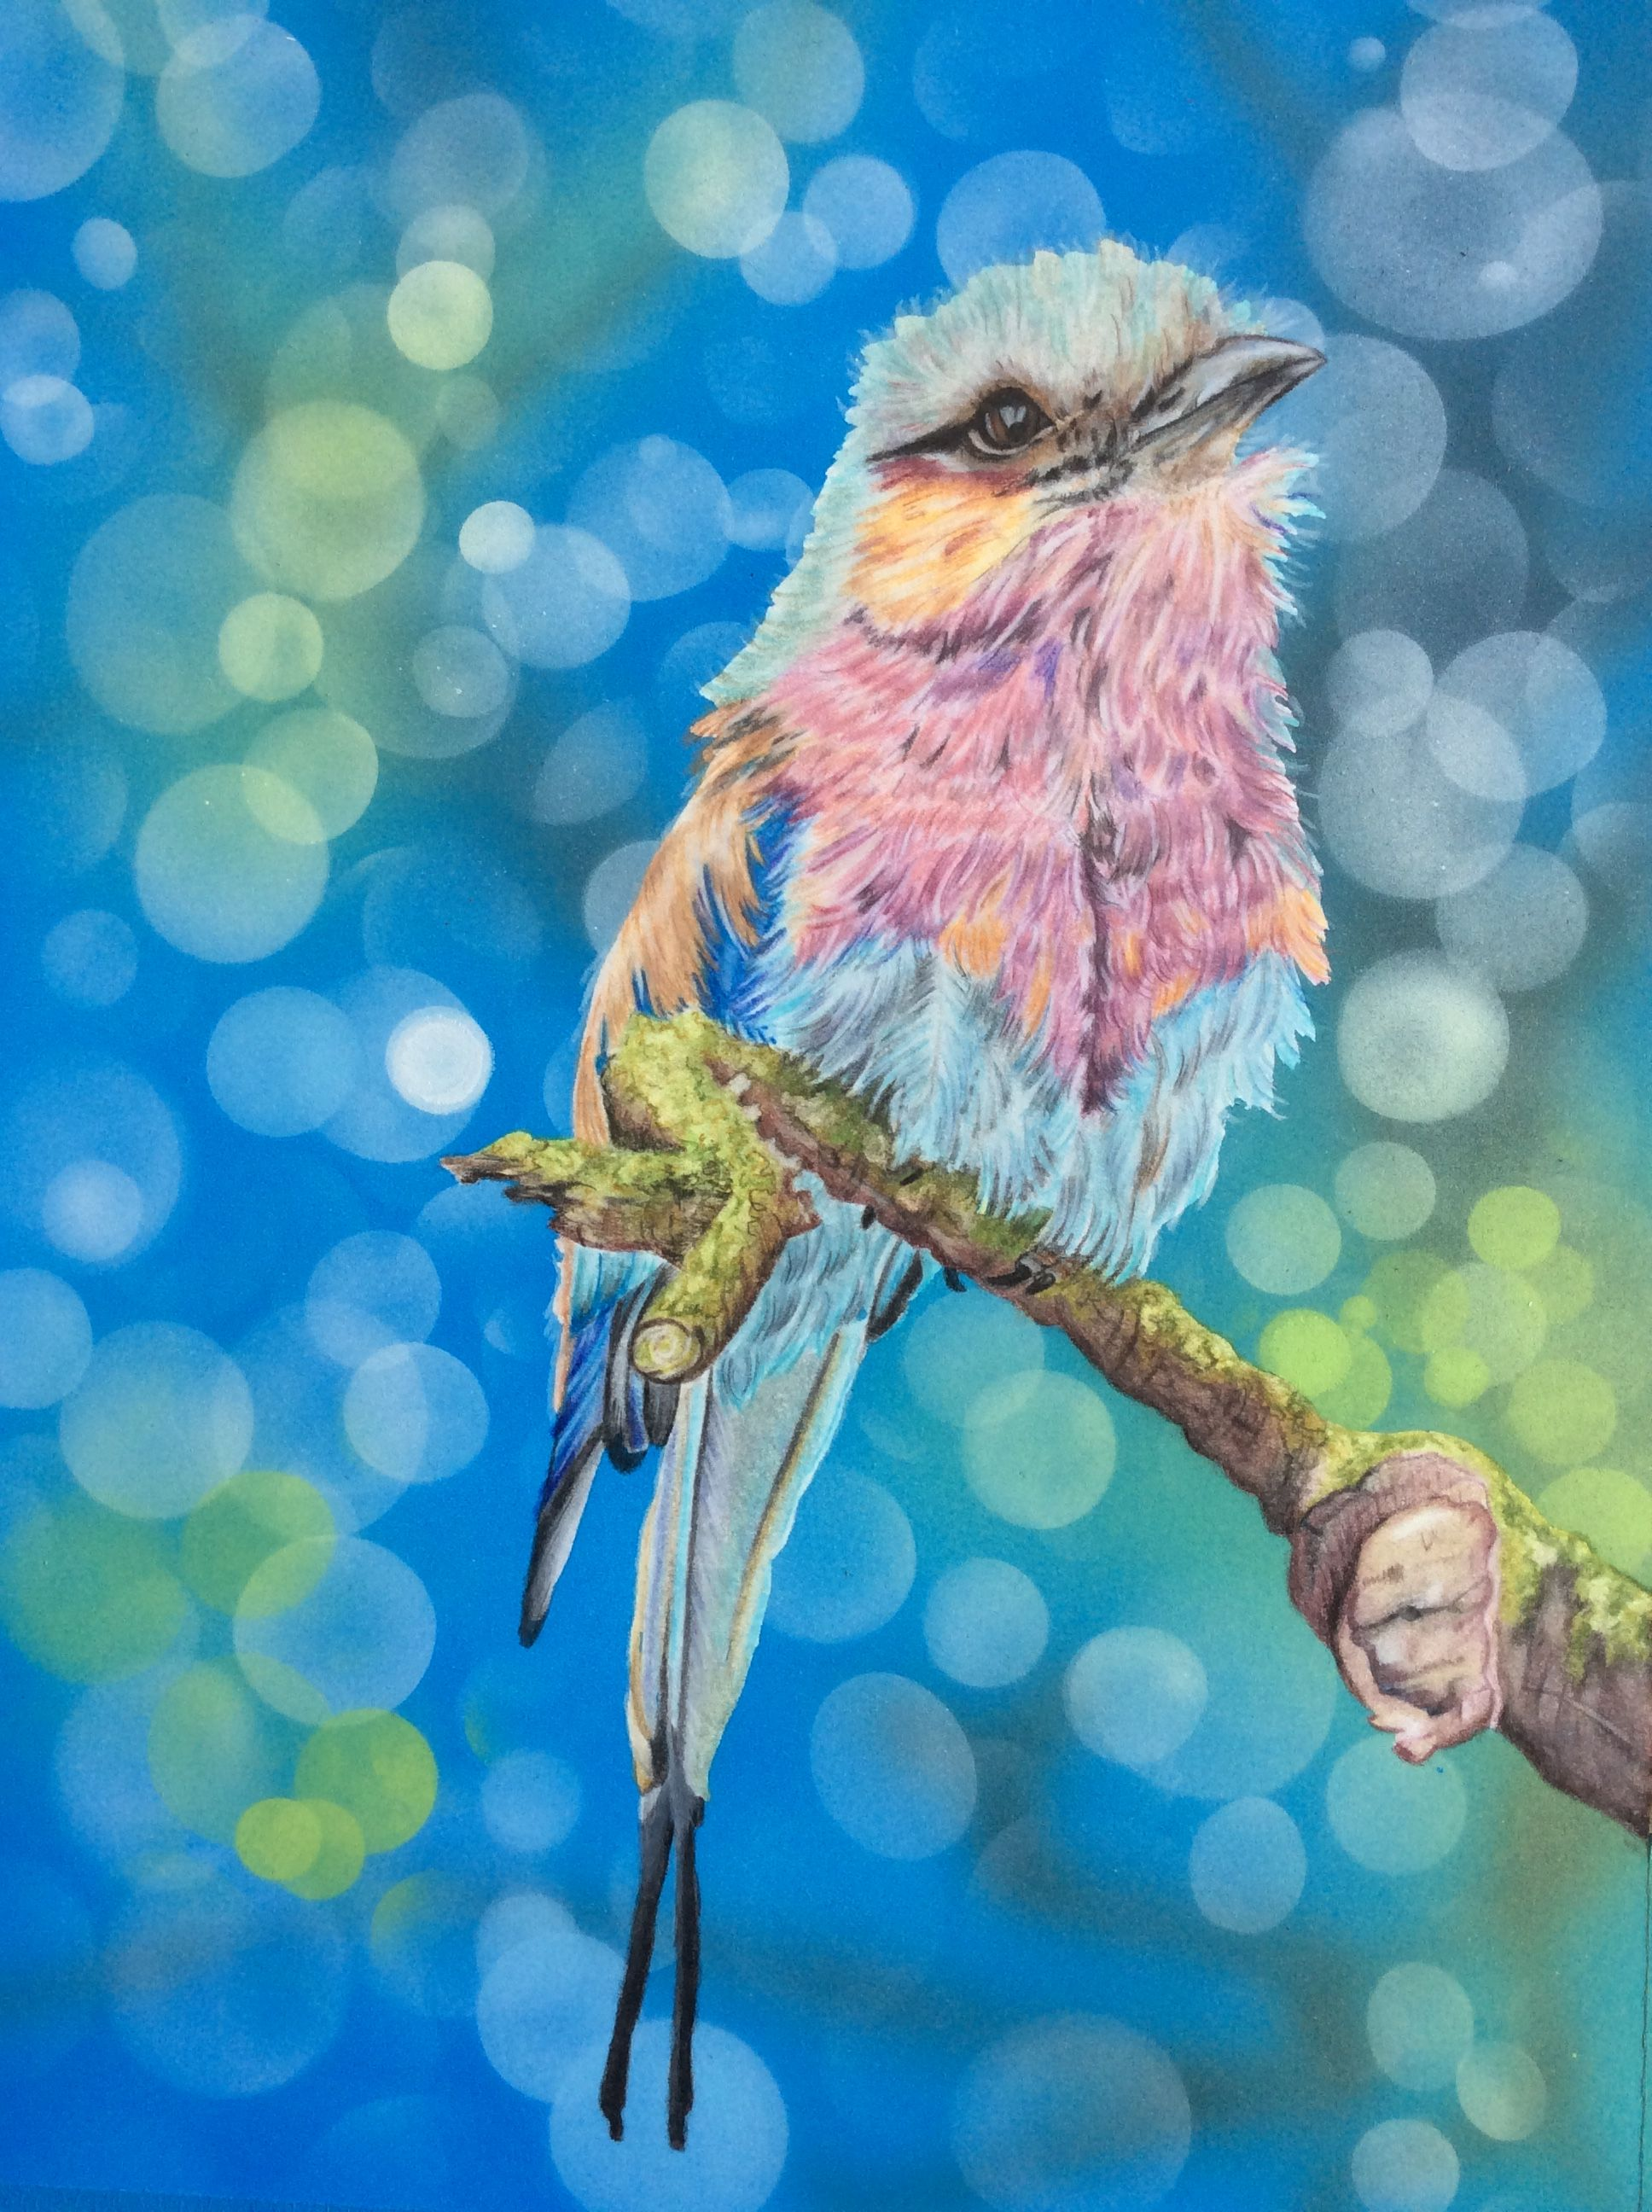 color pencils and air brush. original from Lachri Fine Art